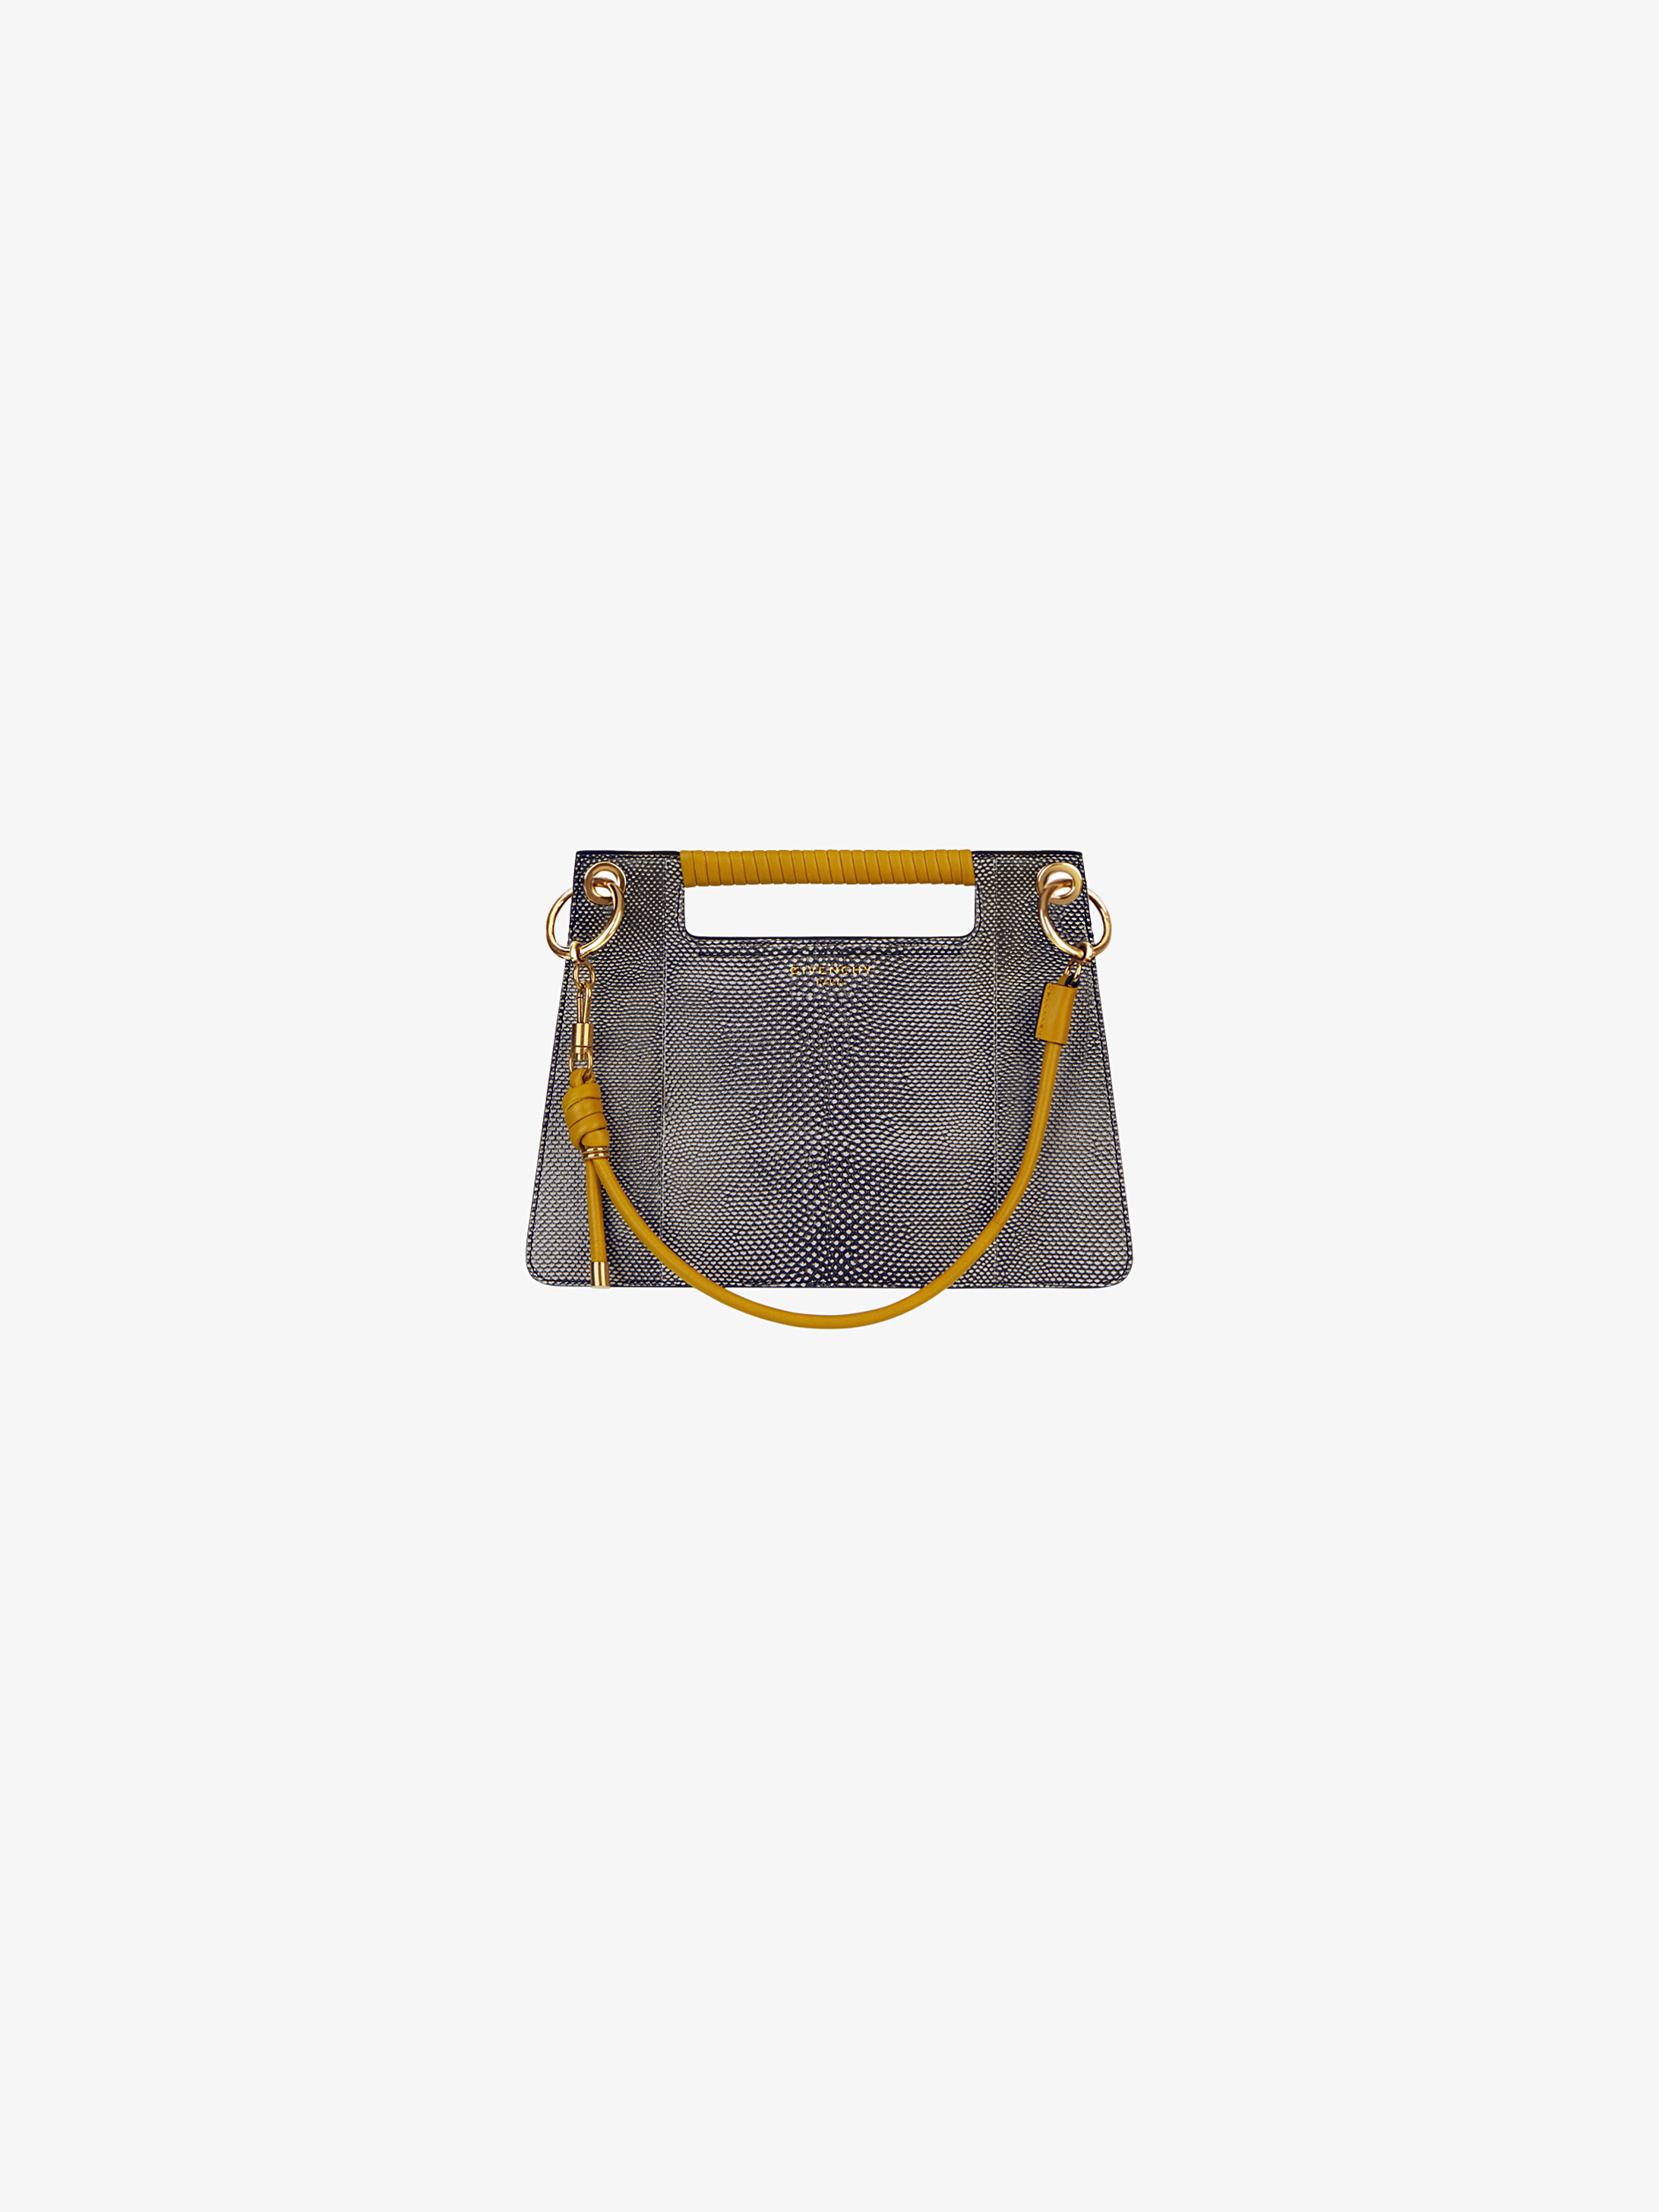 Medium Whip bag in karung skin and leather